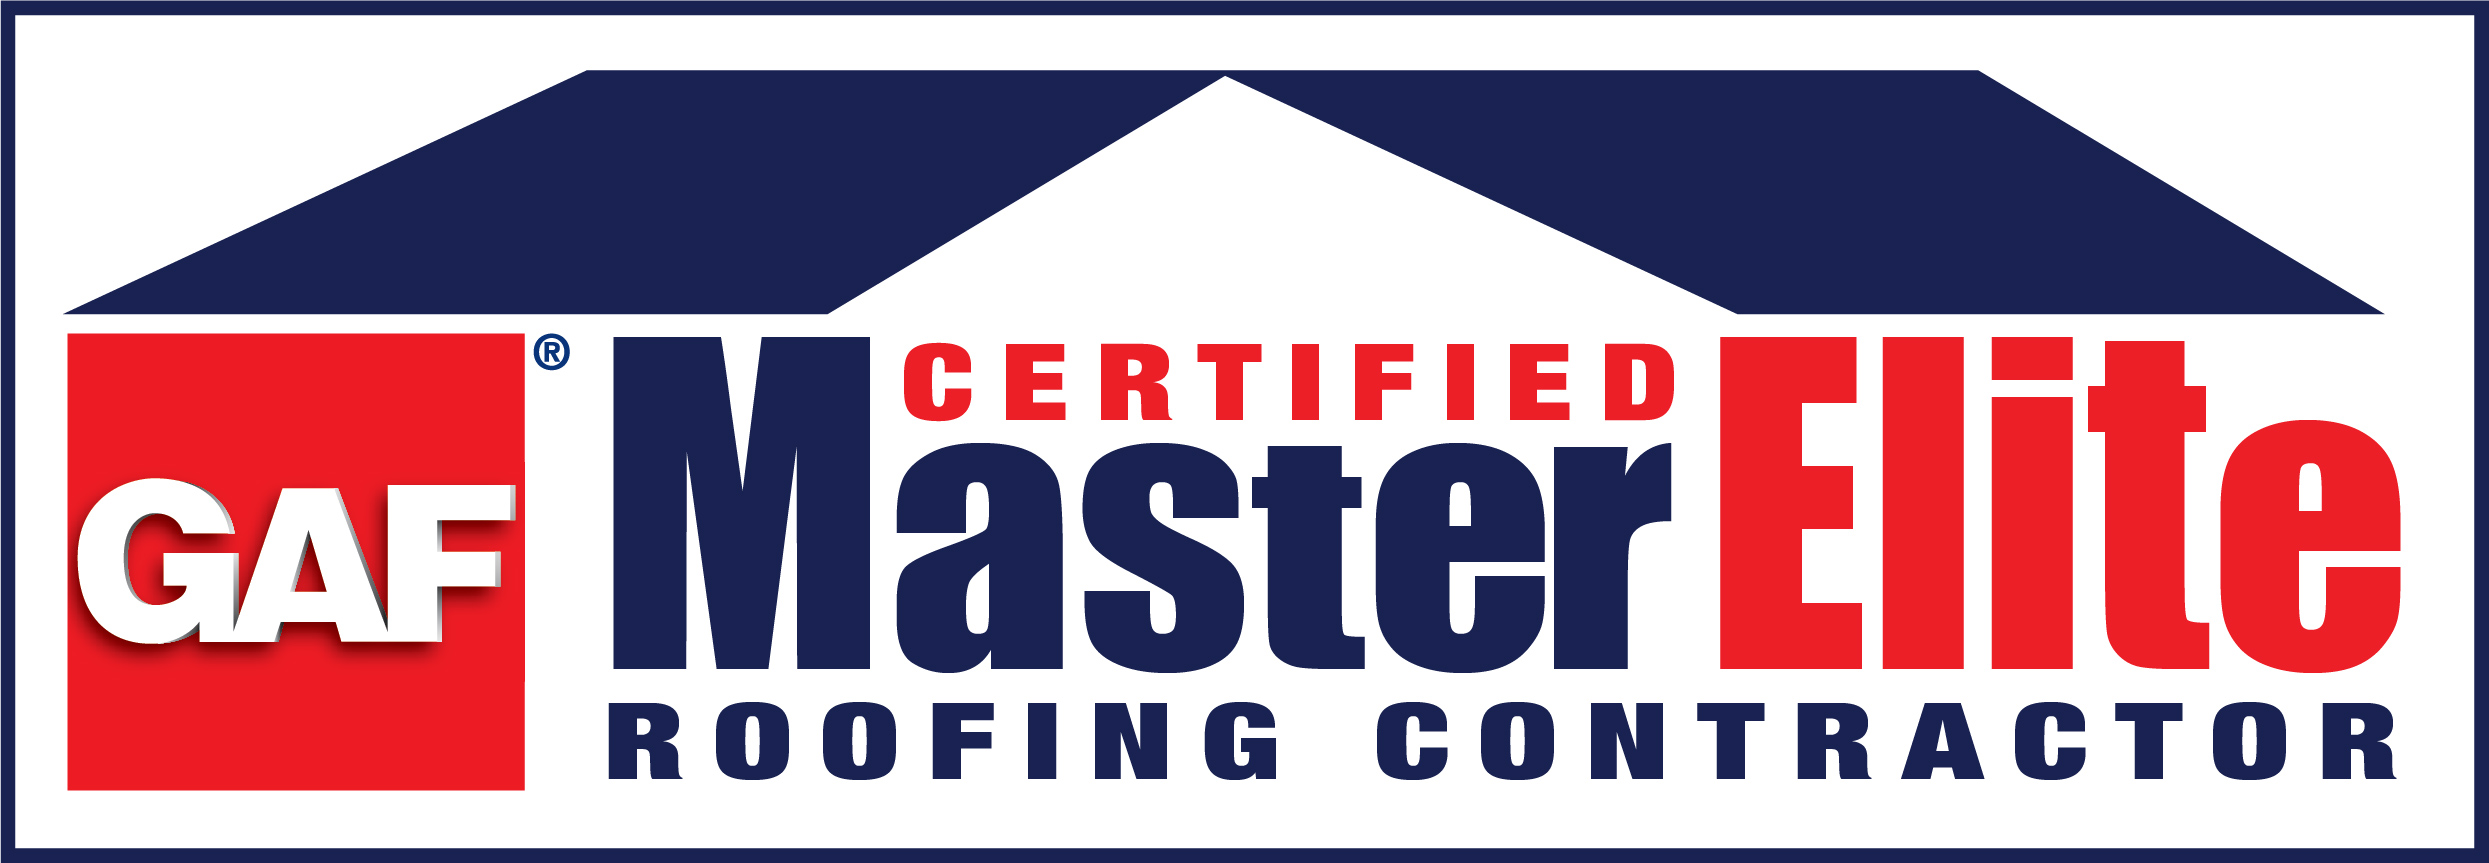 GAF Professional Roofer - Reliable Roofing by CL Frey